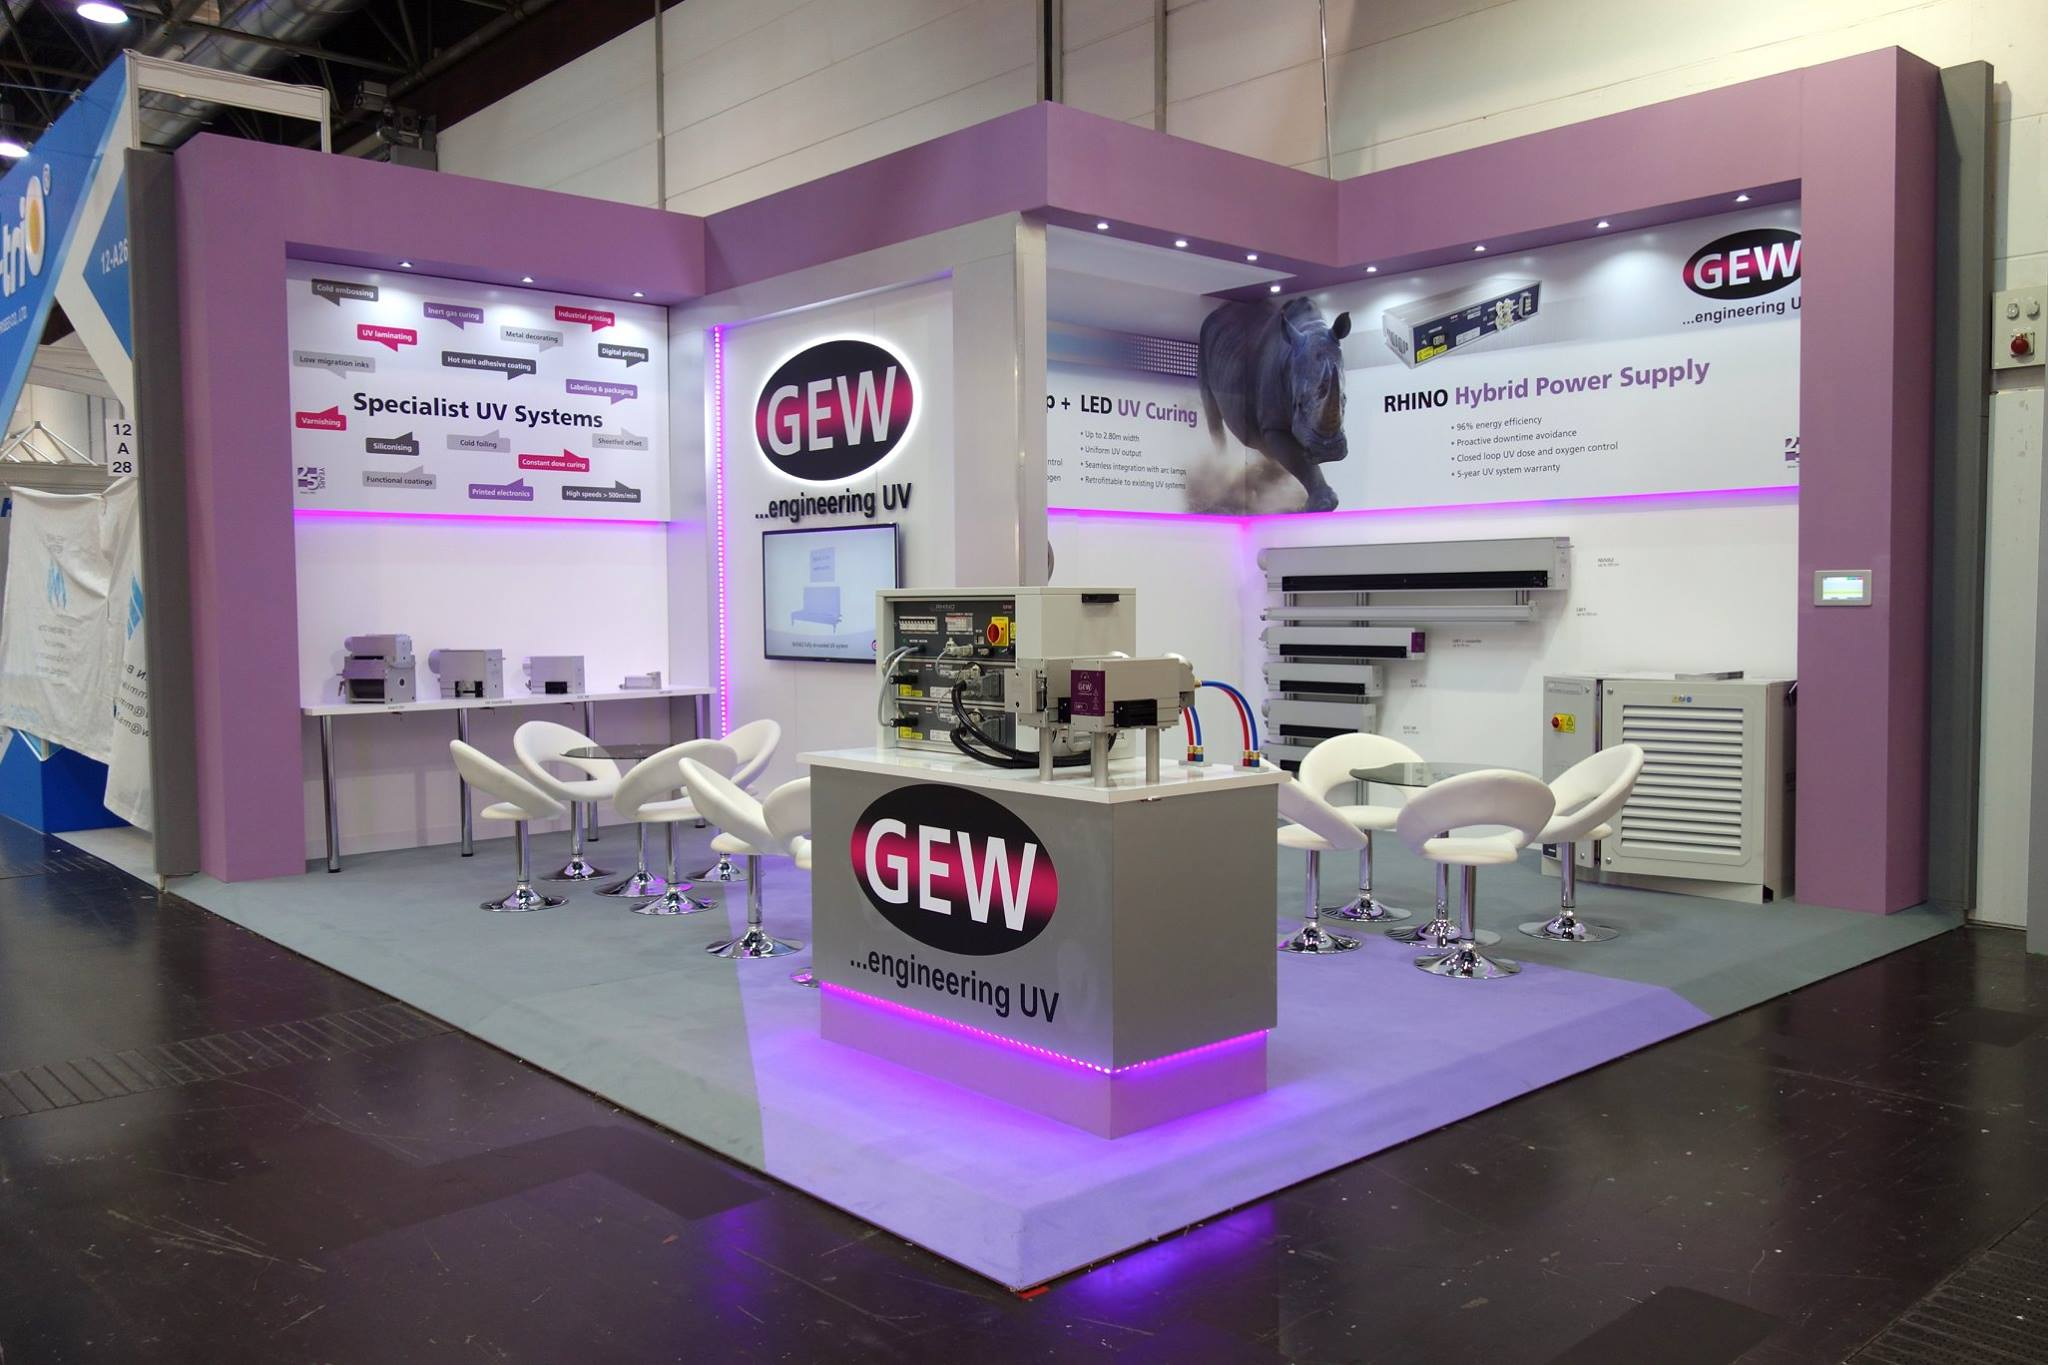 GEW exhibition stand